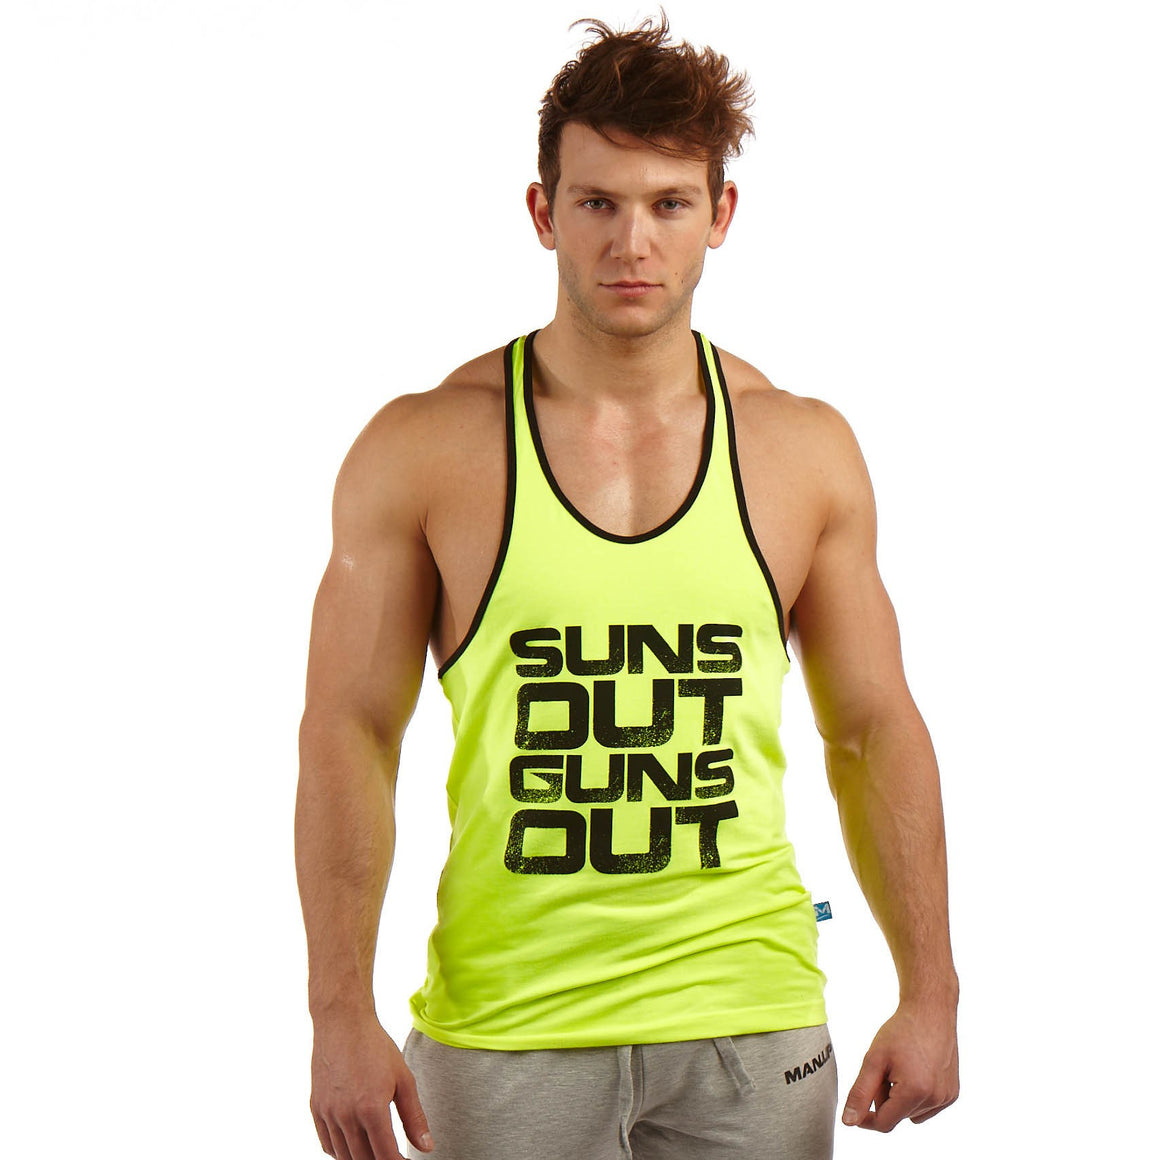 Man Up Stringer Neon - Suns Out Guns Out